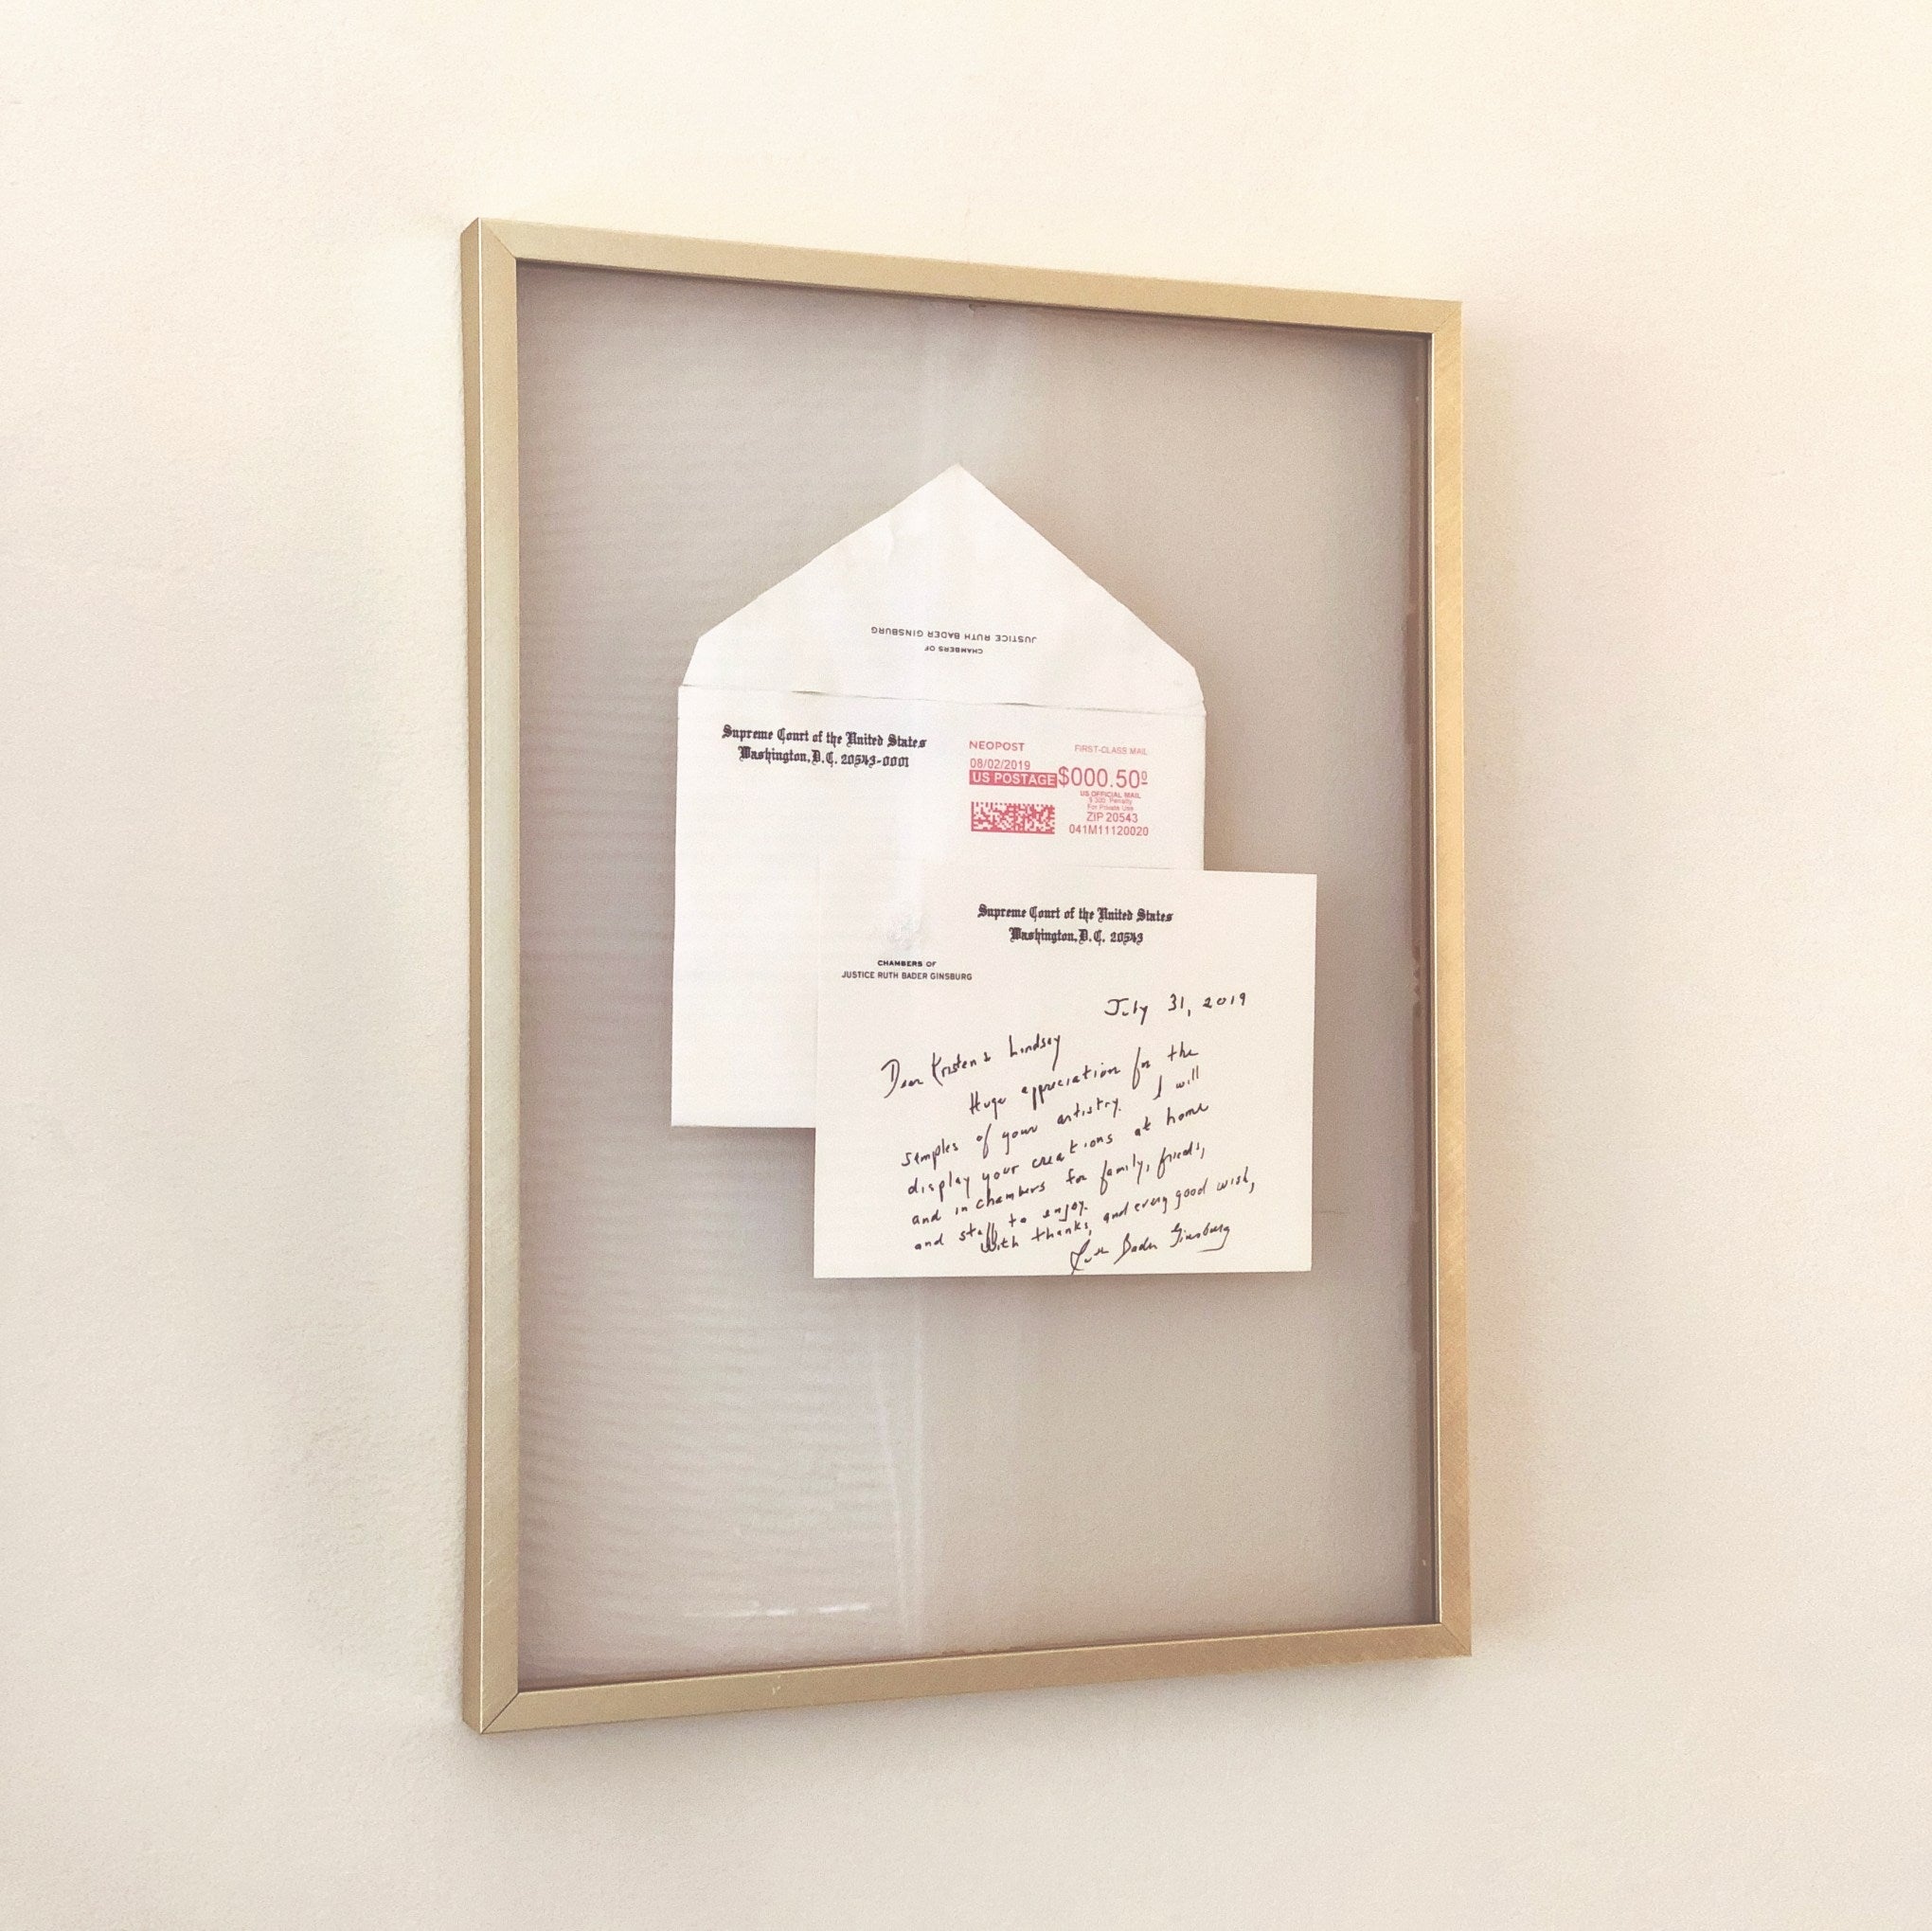 Framed letter from Ruth Bader Ginsburg to Kristen and Lindsey Archer of ARCHd